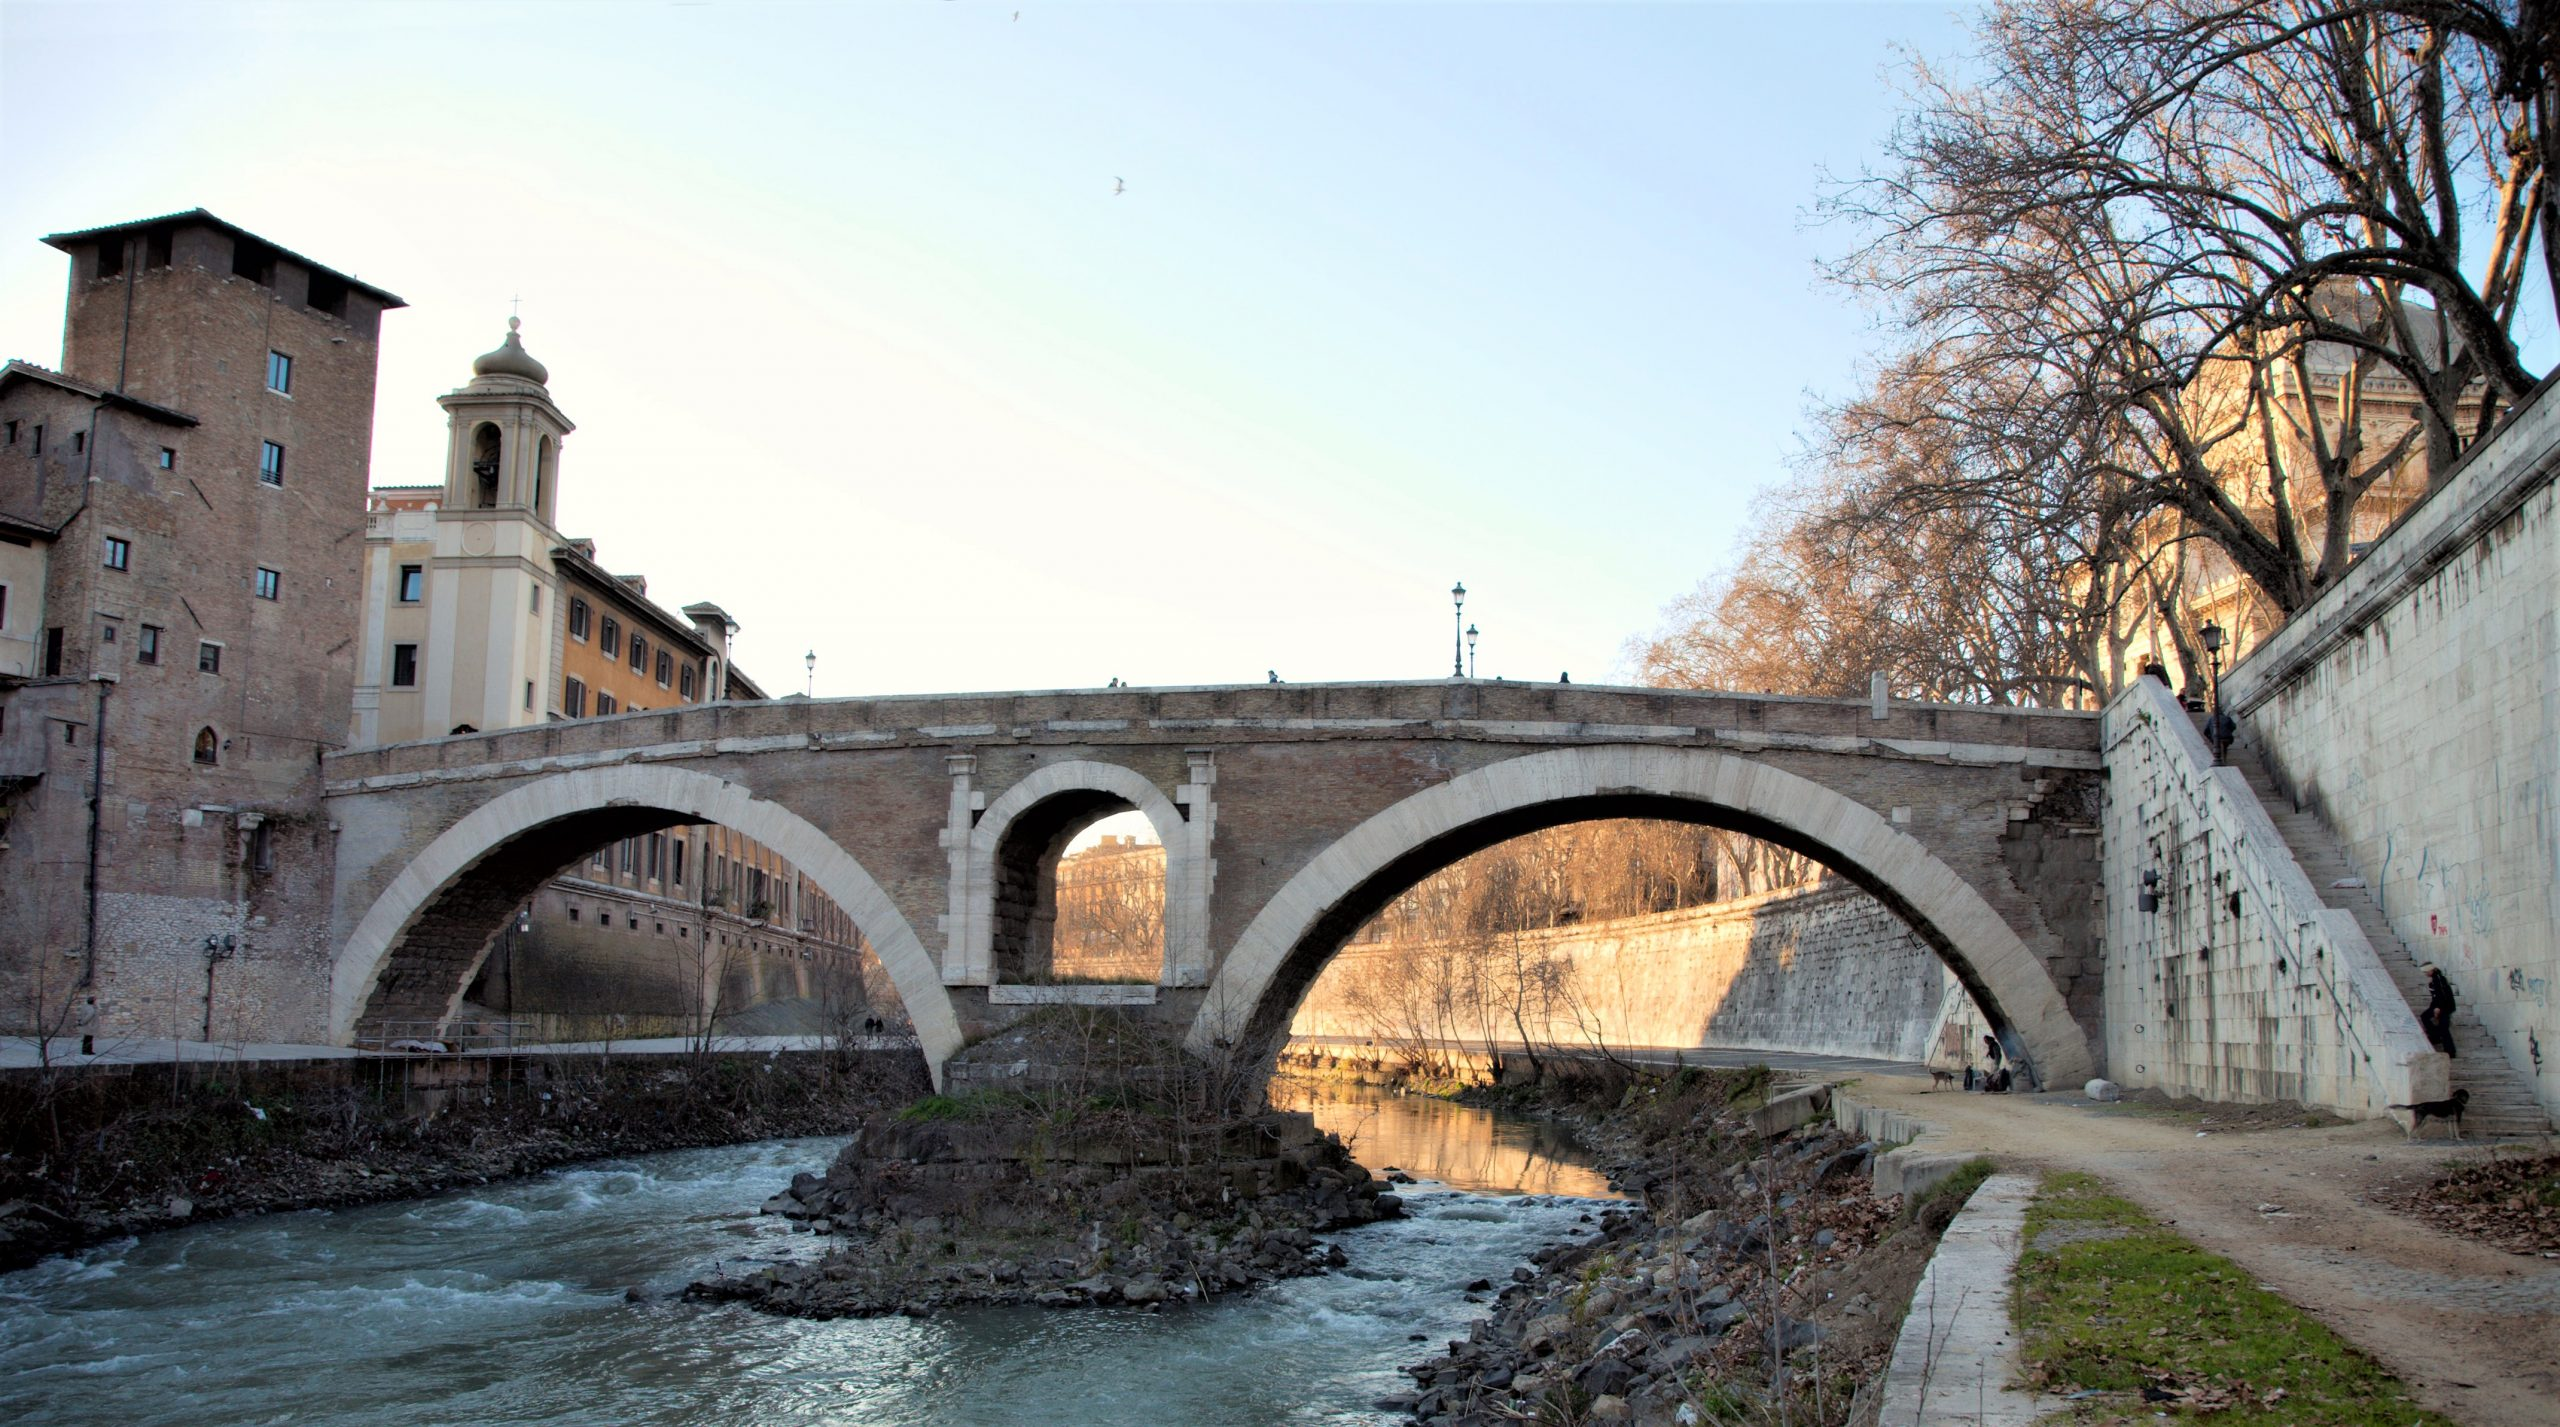 Fabricius's Bridge, which is ancient, leads to Rome's Ghetto or Jewish Comunity